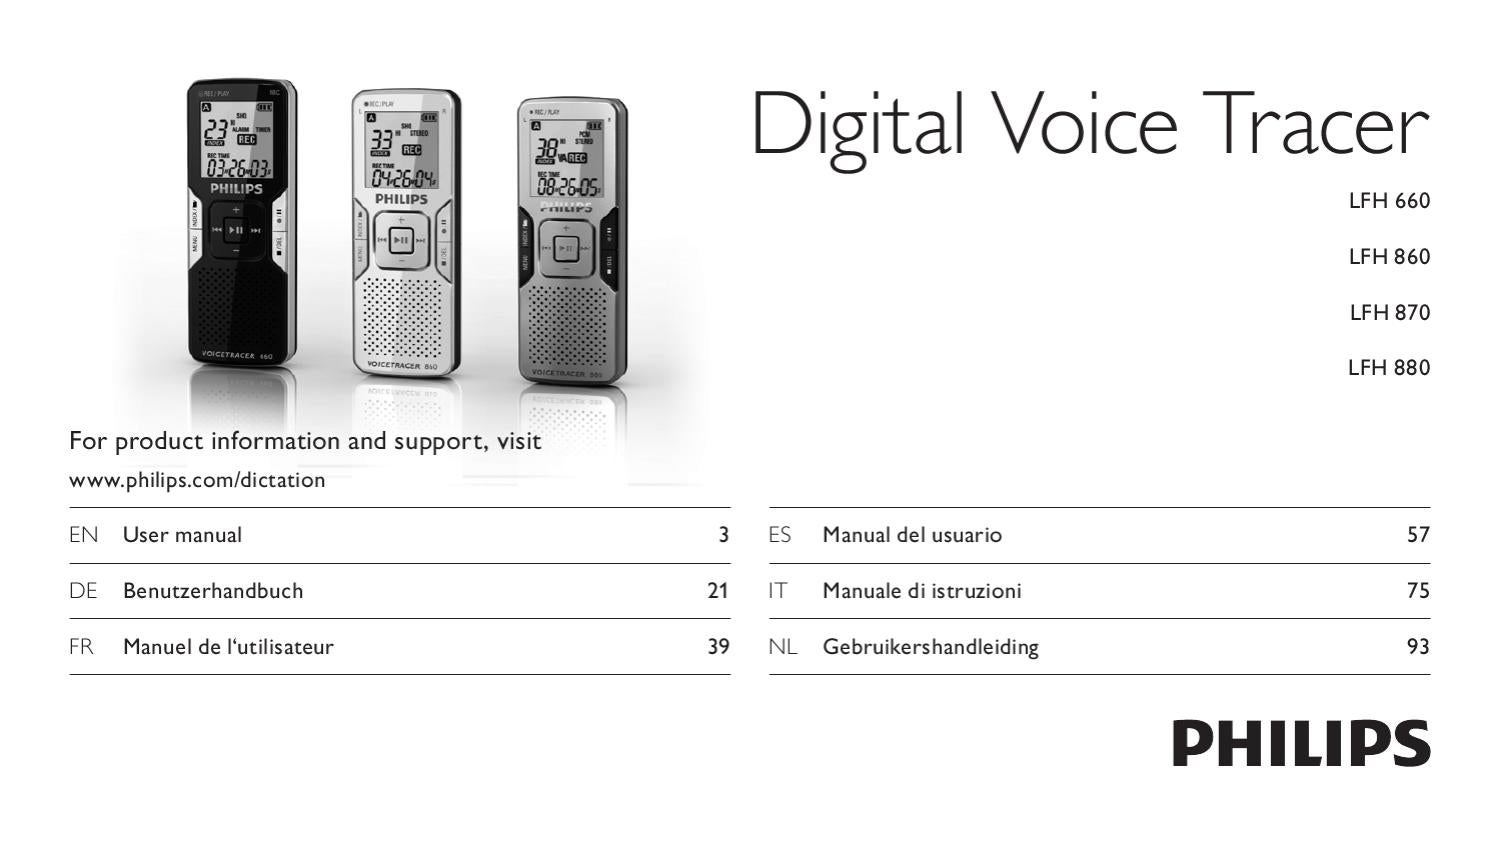 philips voice tracer dvt2500 user manual